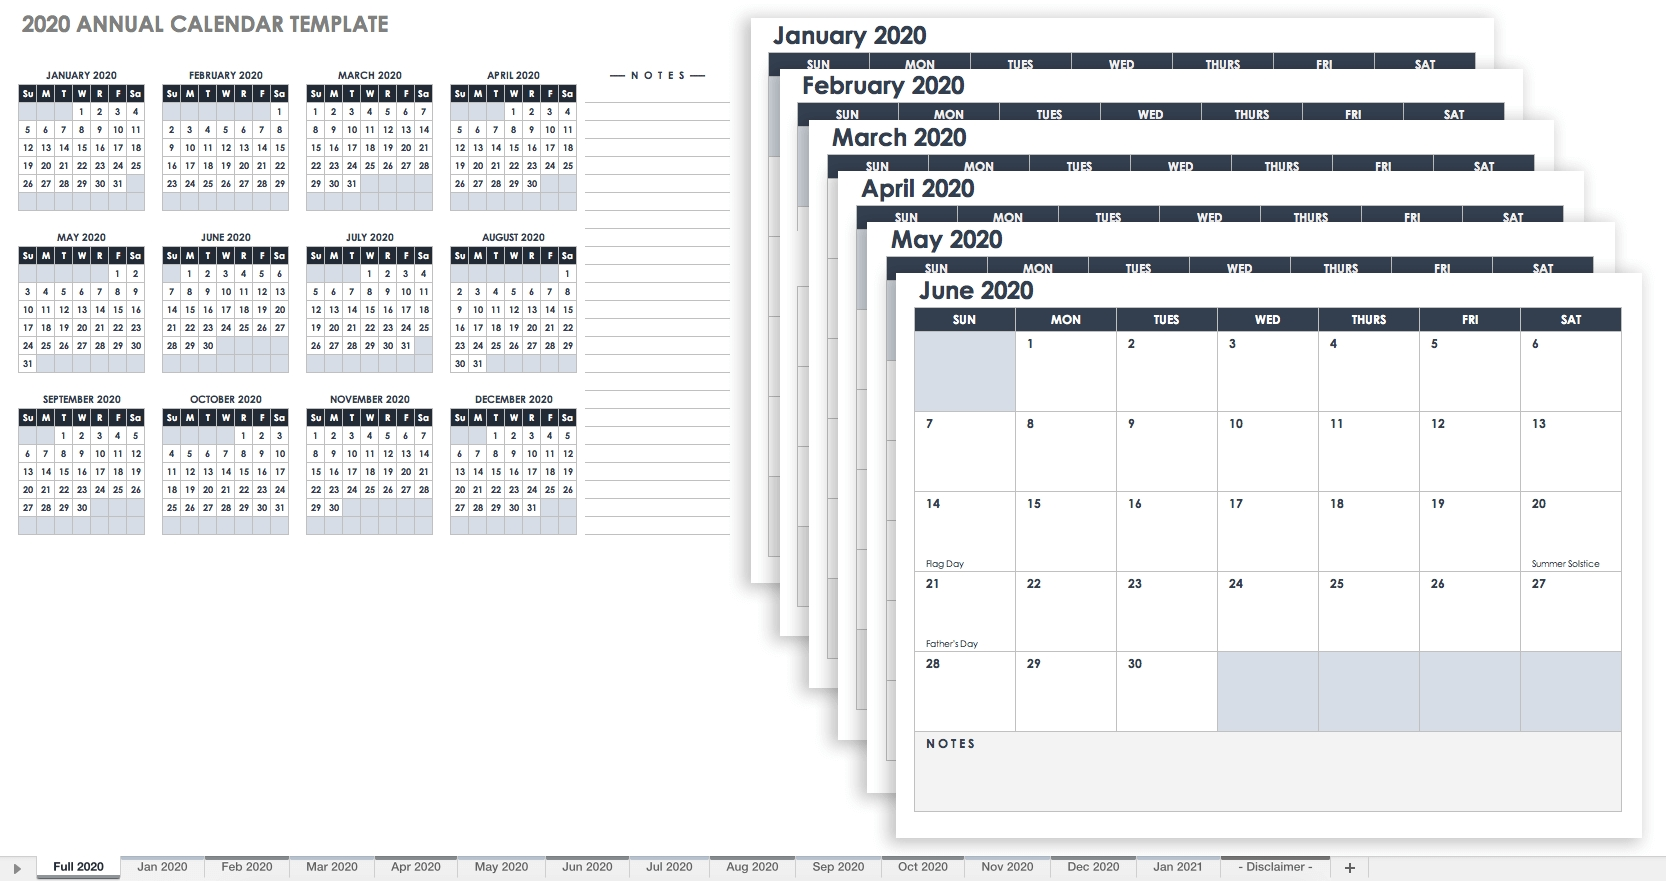 Free, Printable Excel Calendar Templates For 2019 & On | Smartsheet with One Page 2 Years Calendar 2019 2020 With Week Number